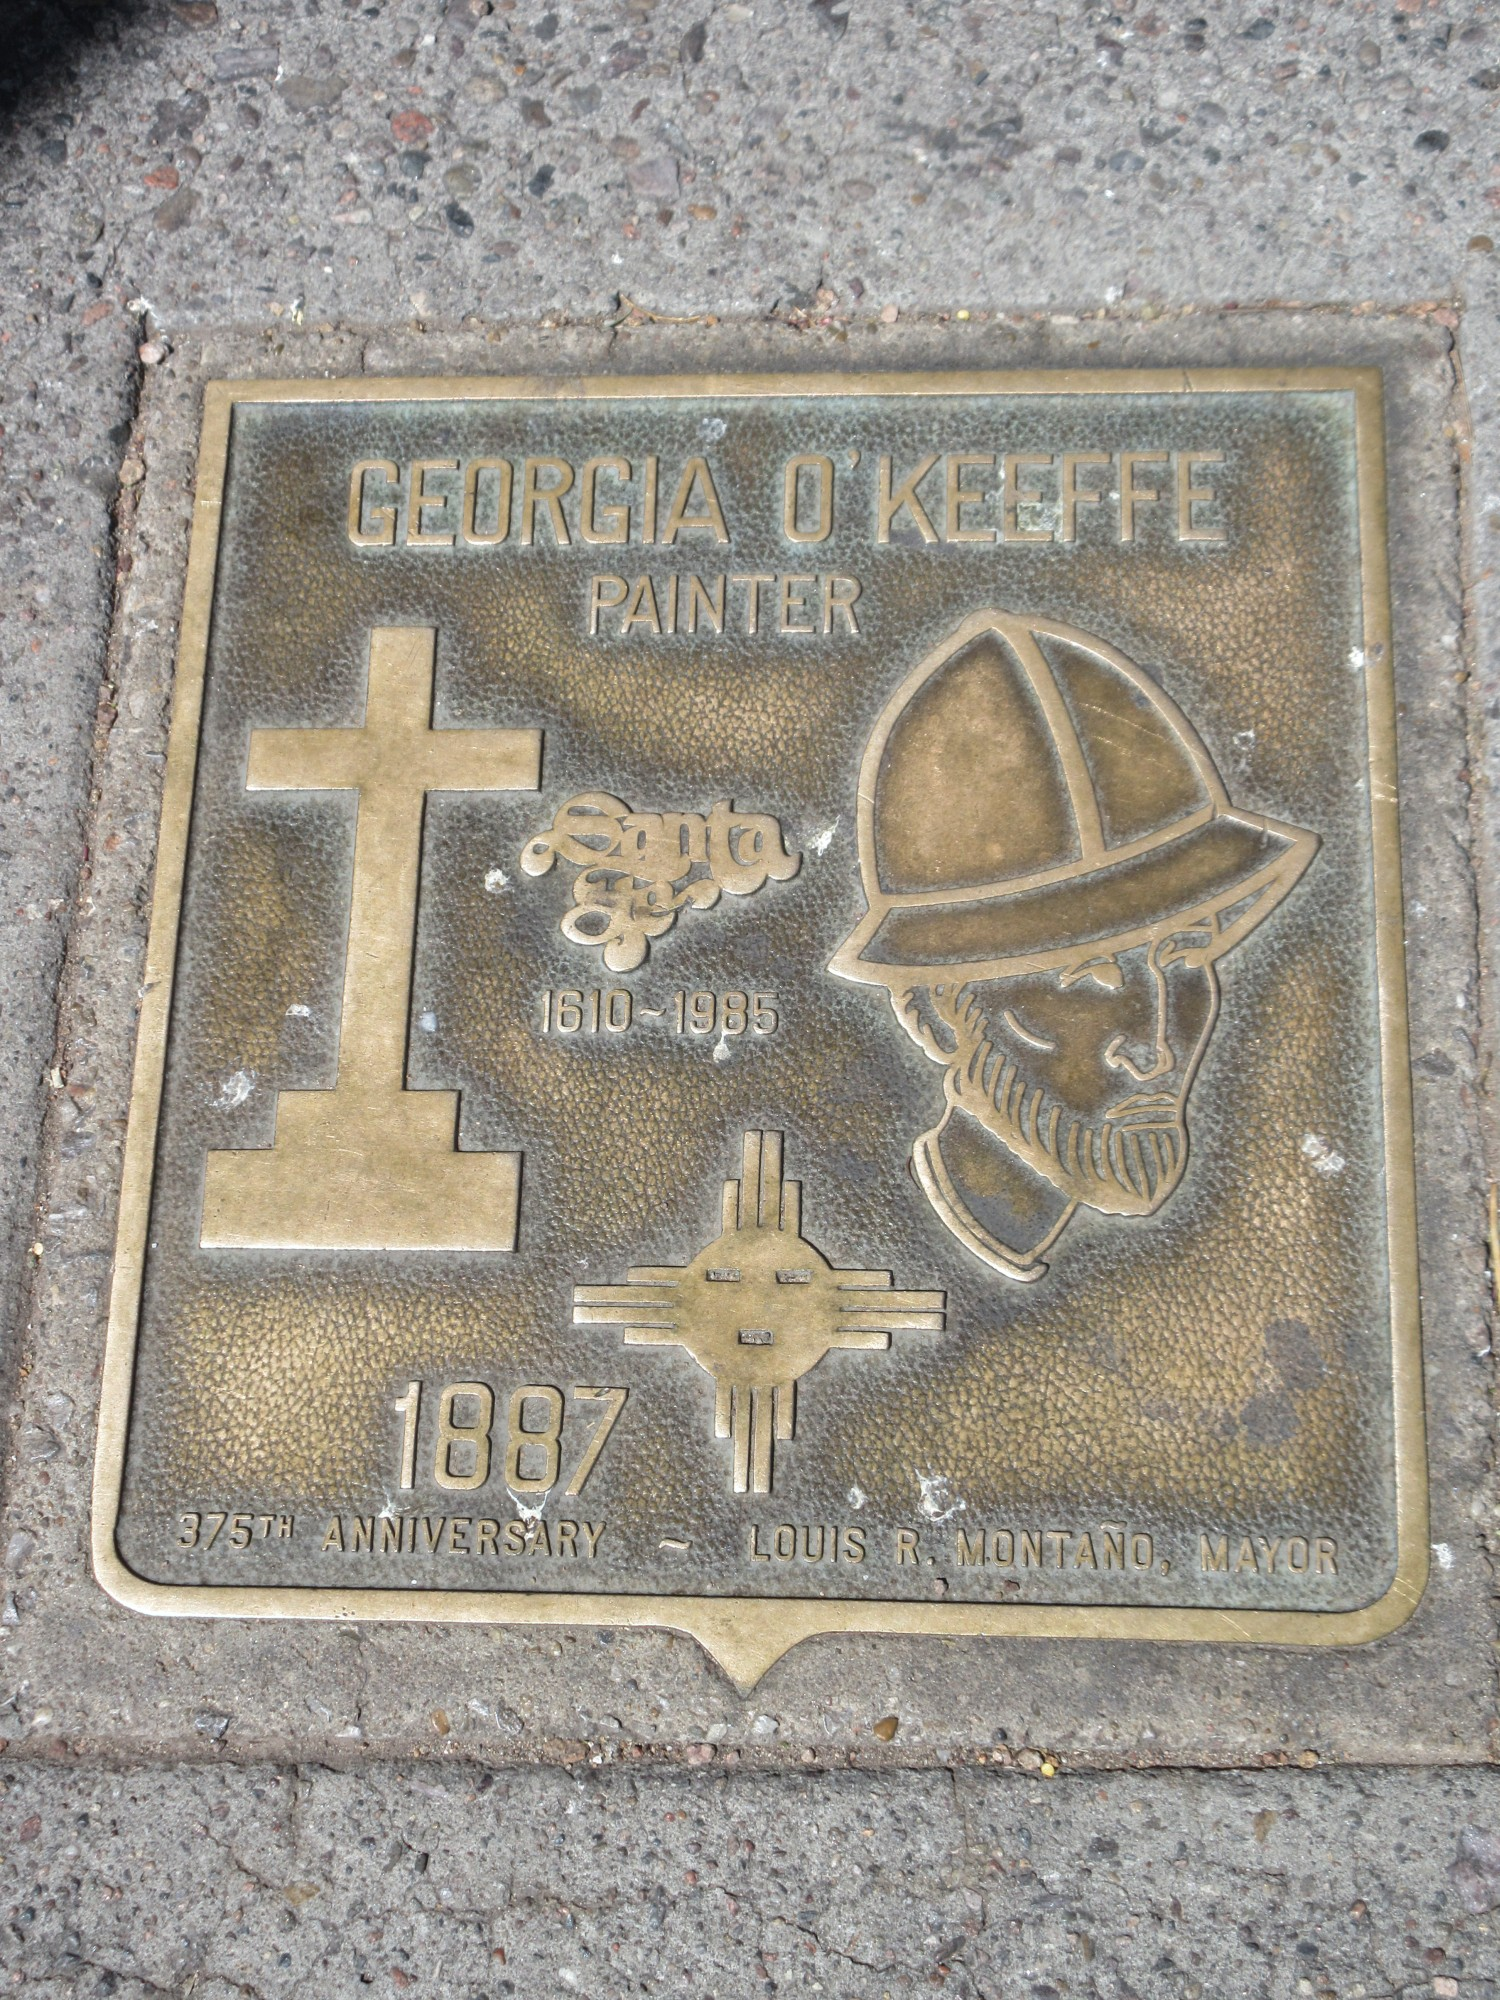 Santa Fe New Mexico Museum Of Art Plaques Of Santa Fe Artist Georgia O Keefee Plaque New Mexico Geography Im Austria Forum